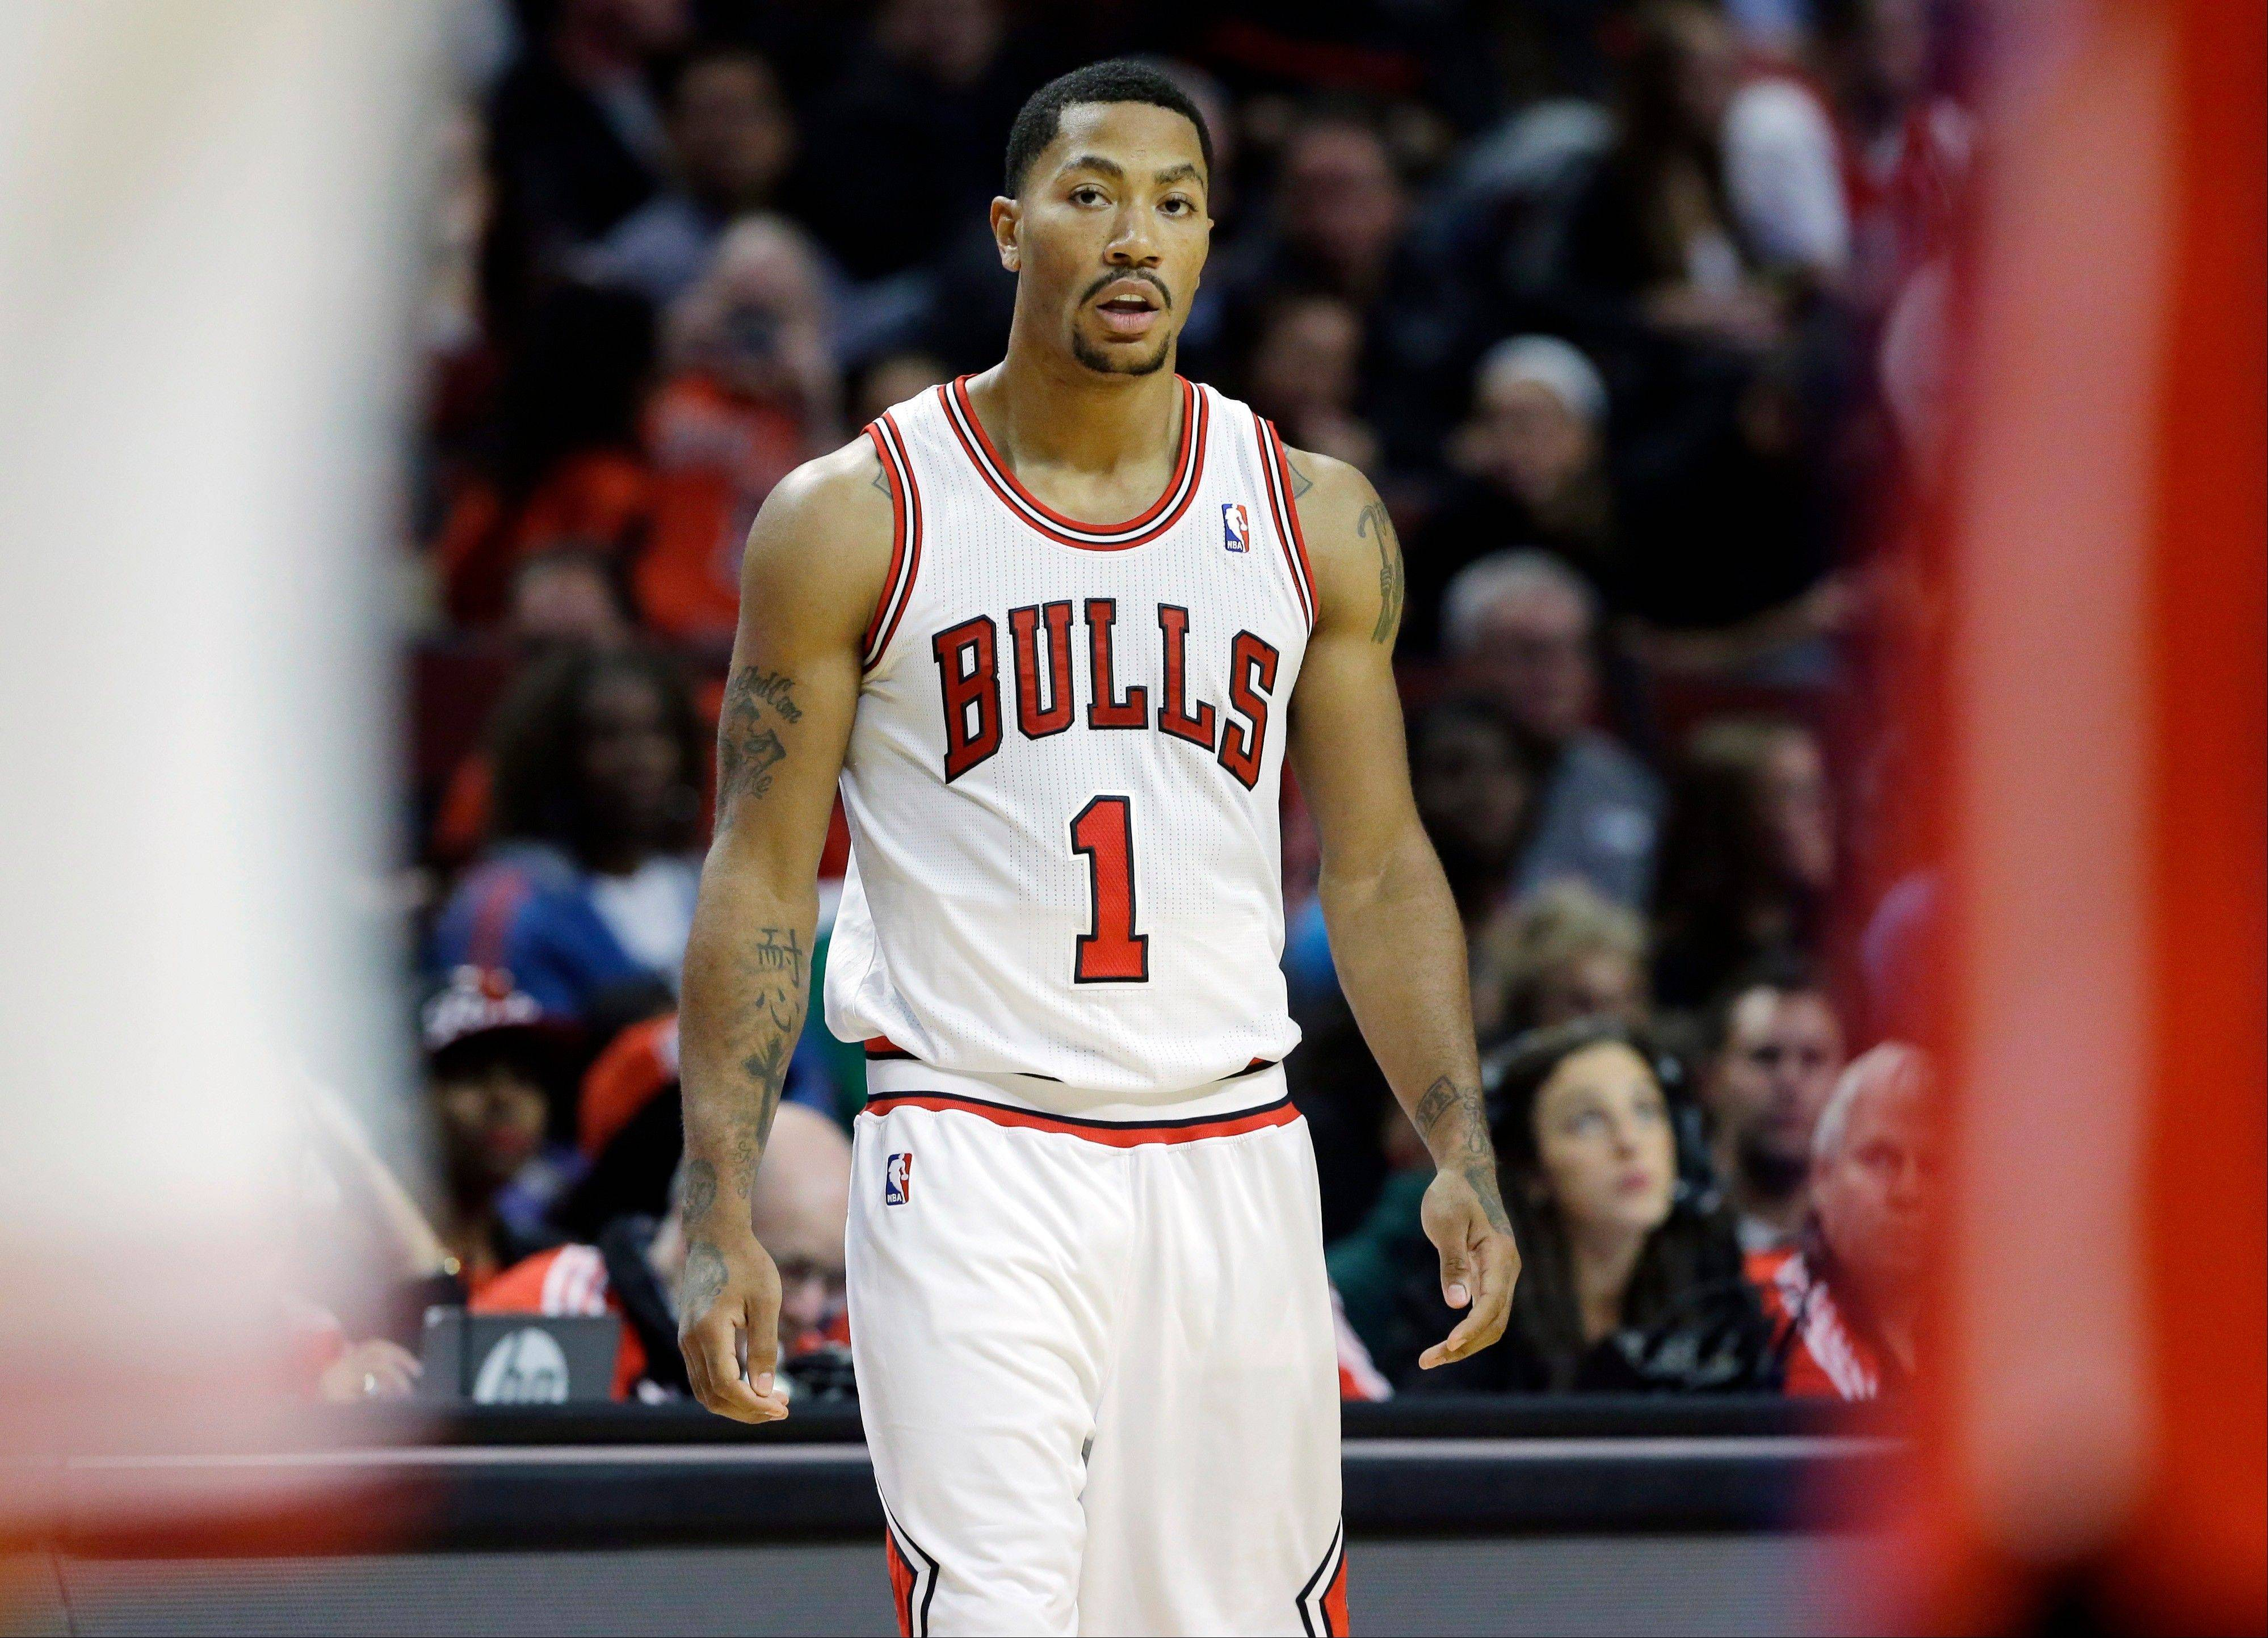 Bulls guard Derrick Rose looks to his teammates during the first half of Wednesday night�s preseason game against the Detroit Pistons. It was Rose�s first game on the UC floor since injury his knee 18 months ago.